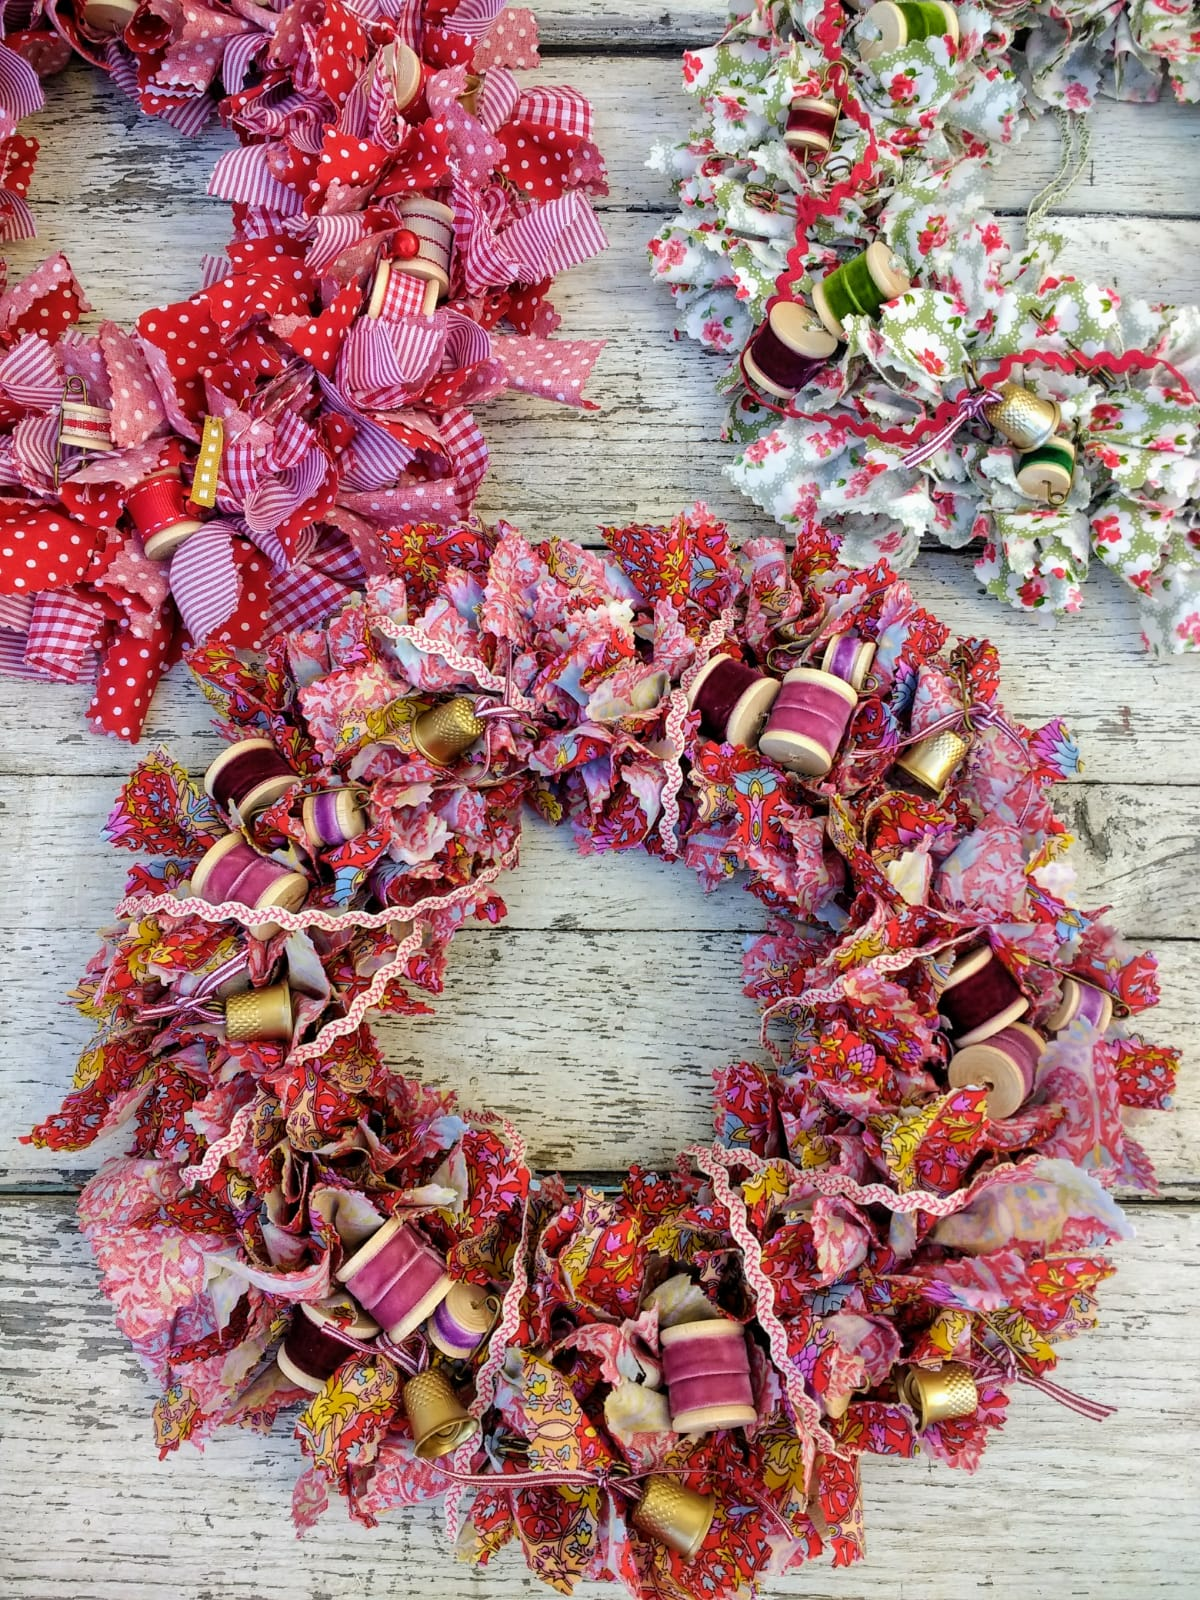 The Malthouse Collective Sew Vintage Christmas Wreath Making workshop